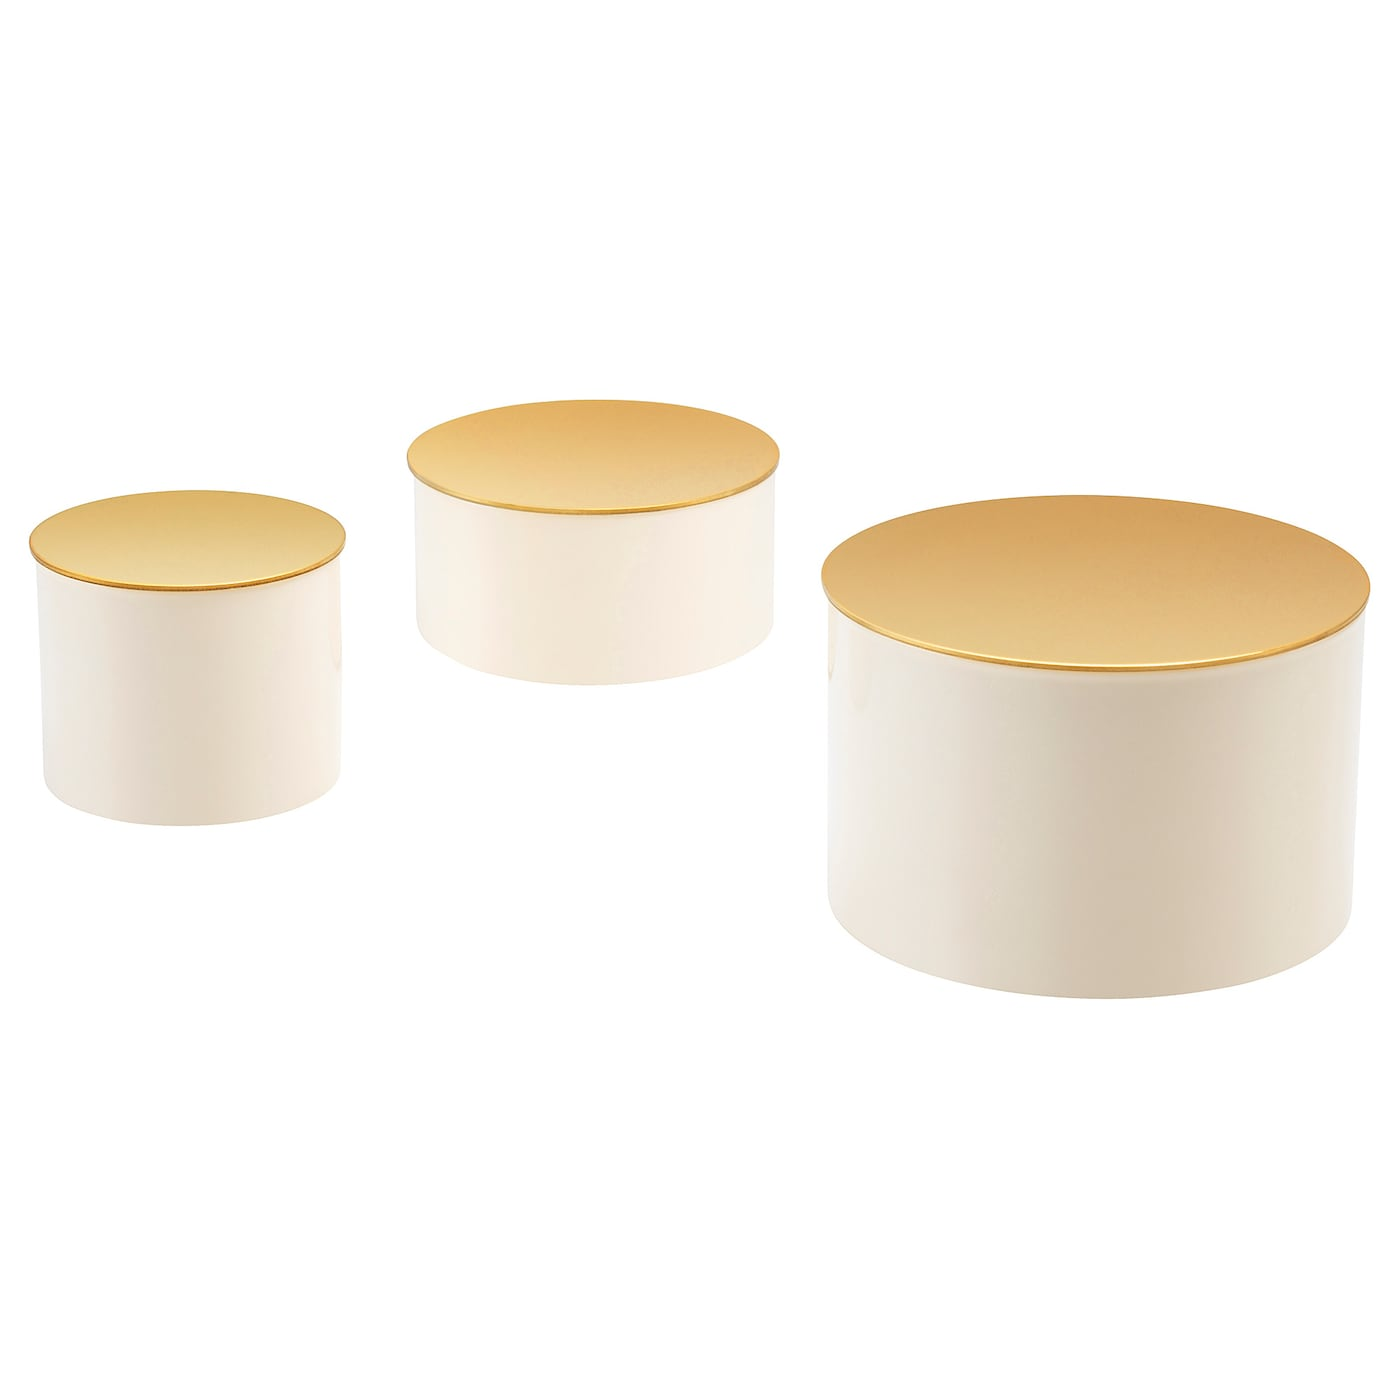 IKEA GLITTRIG decoration box, set of 3